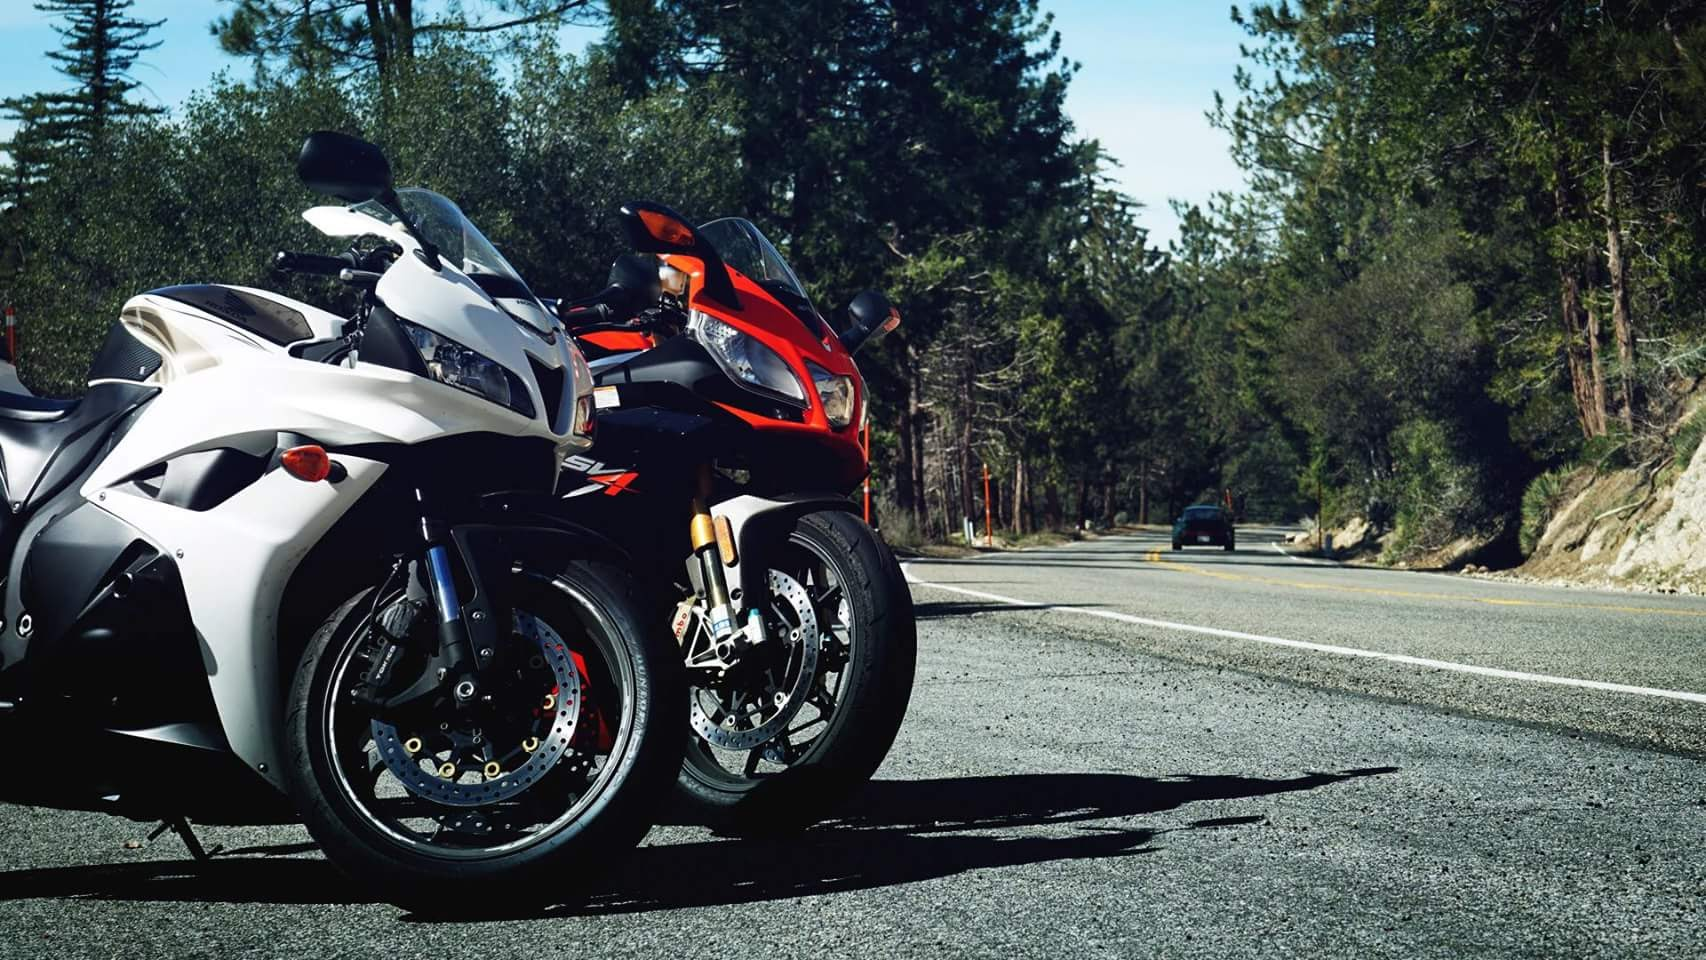 sportbike faq startriding com beginner motorcycle rider help and